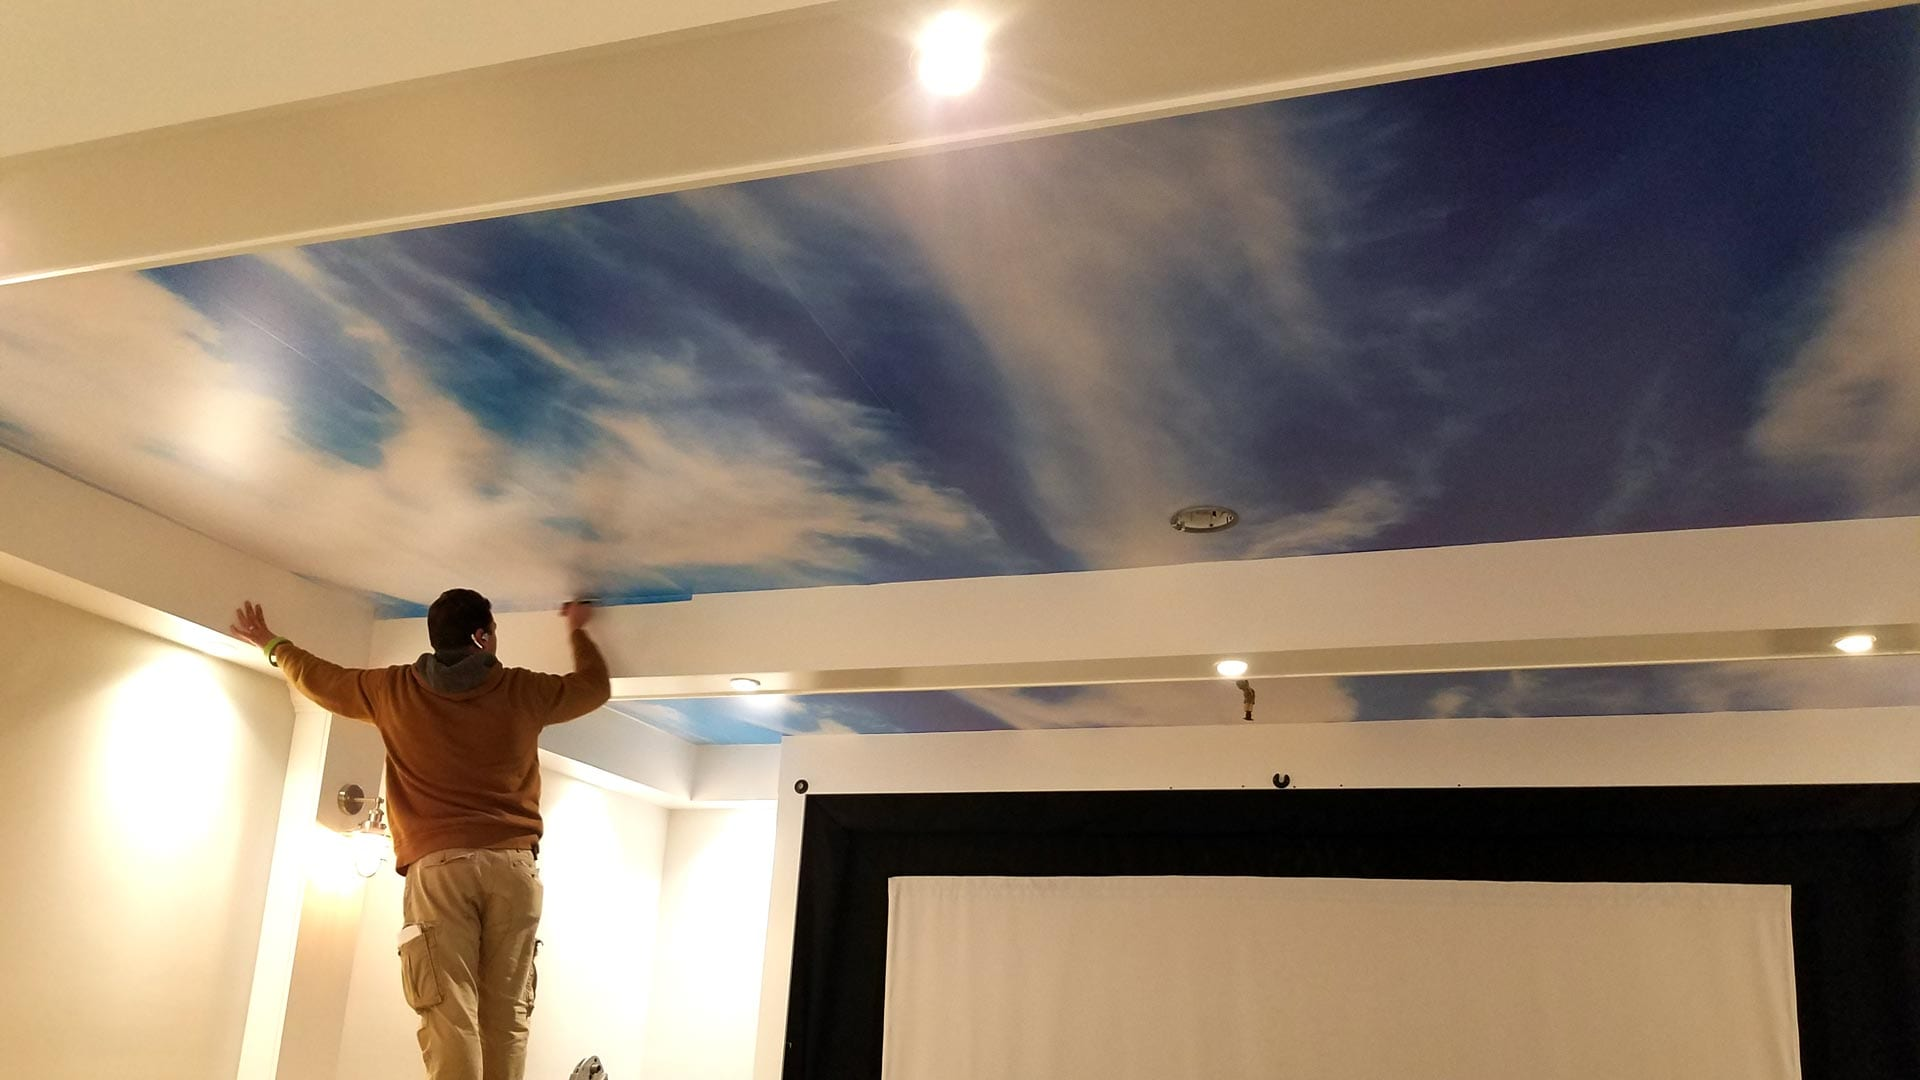 product cloud panel area peas art to ceiling acoustical three mount in solutions reduce clouds using alphasorb noise lounge